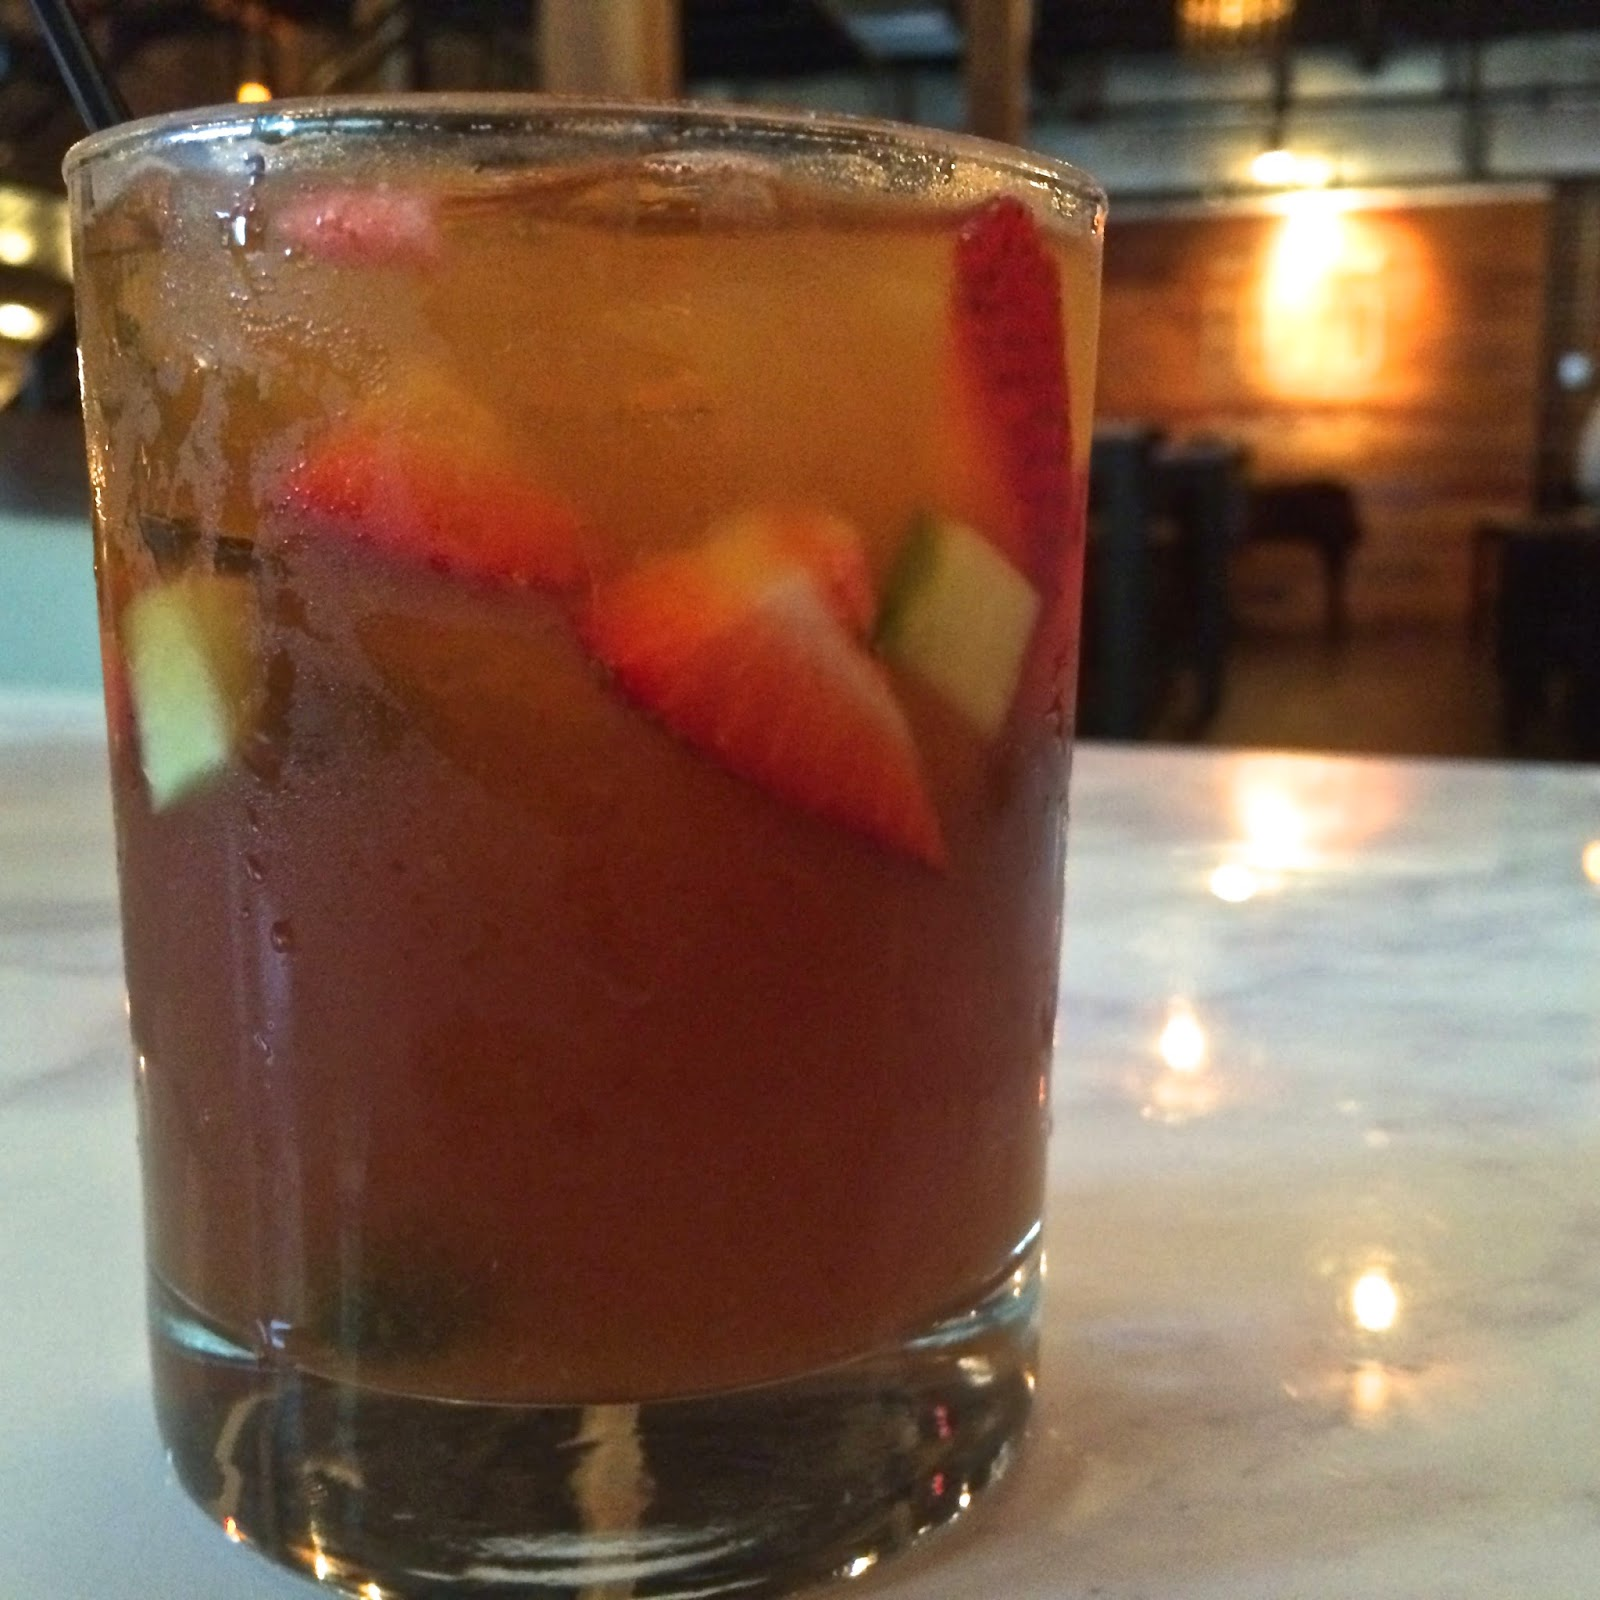 Blend's Pimm's Cup